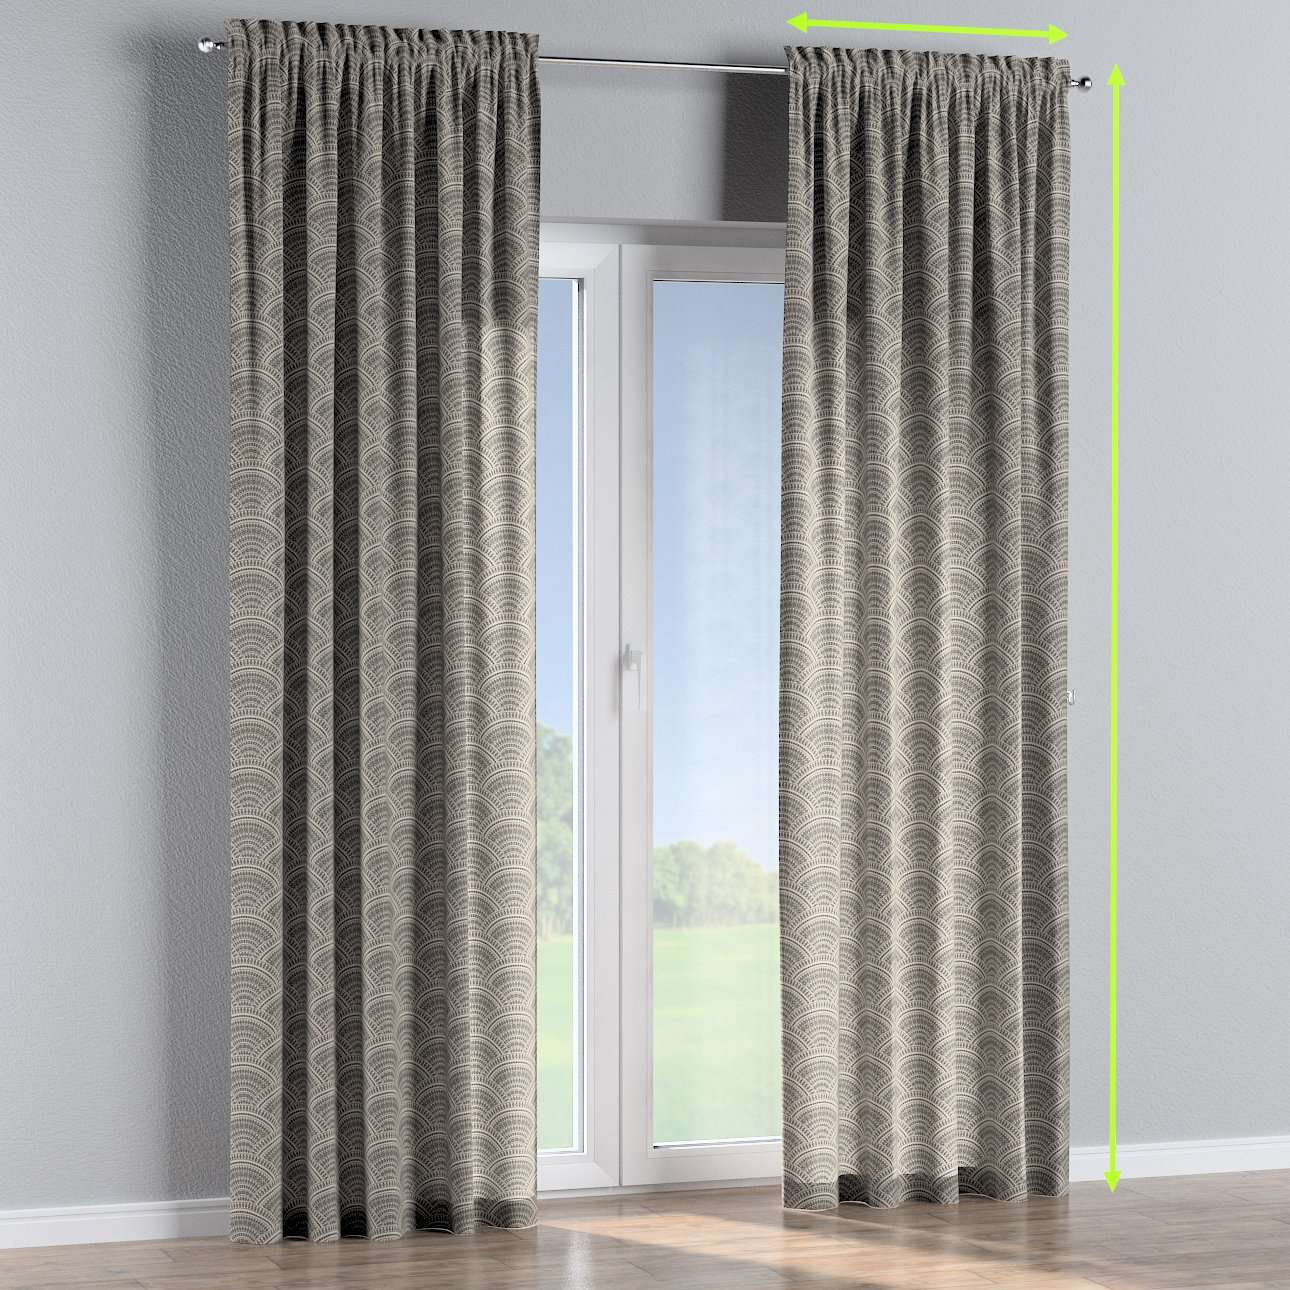 Slot and frill curtains in collection Comic Book & Geo Prints, fabric: 141-19